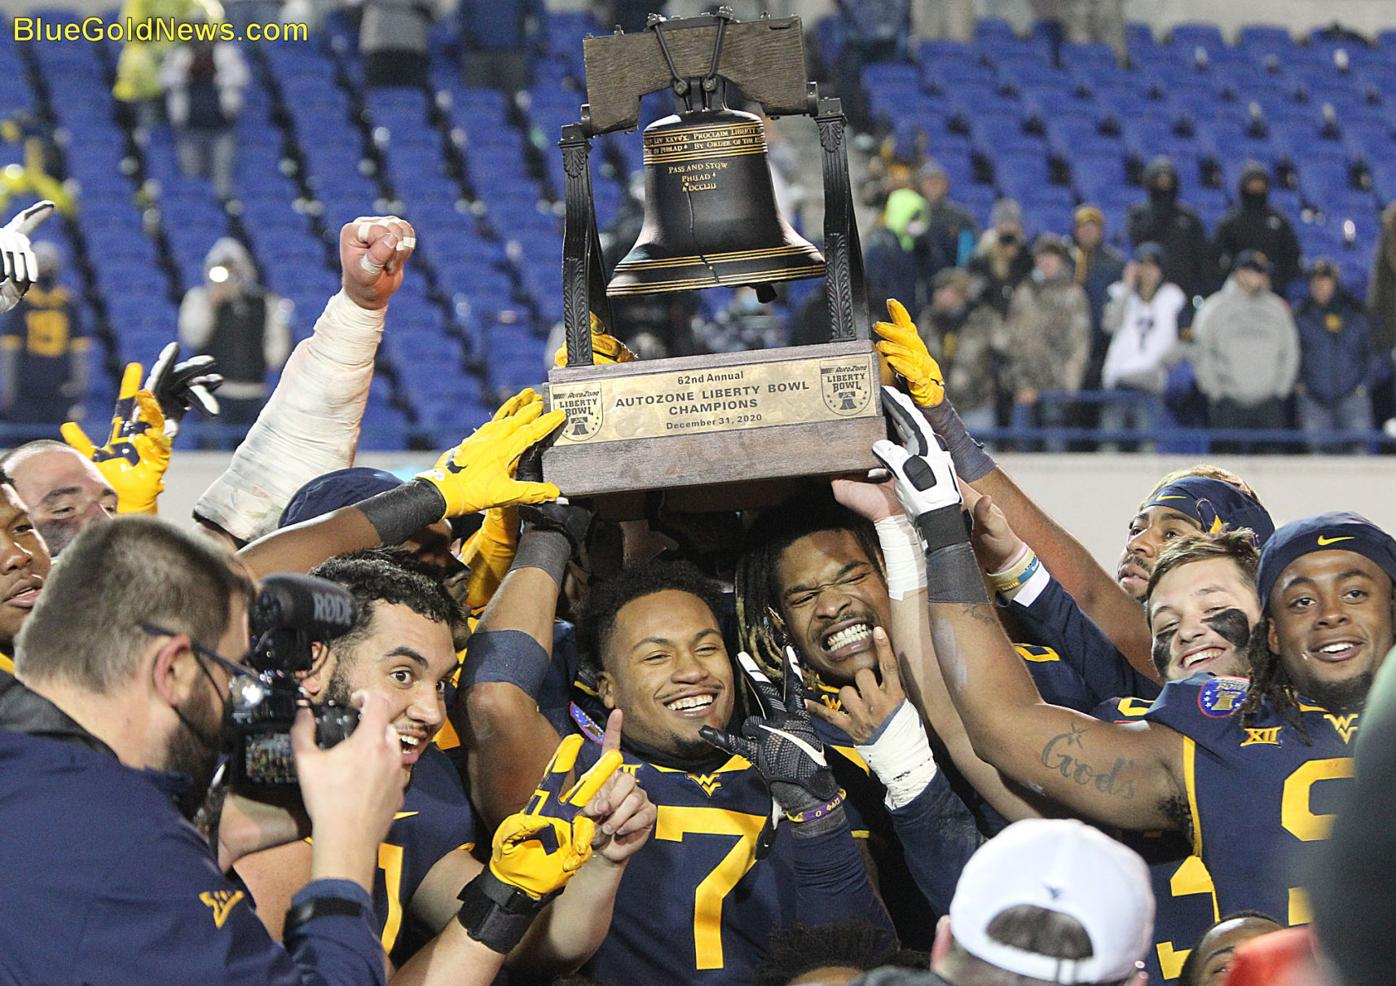 WVU Football Liberty Bowl Trophy.JPG